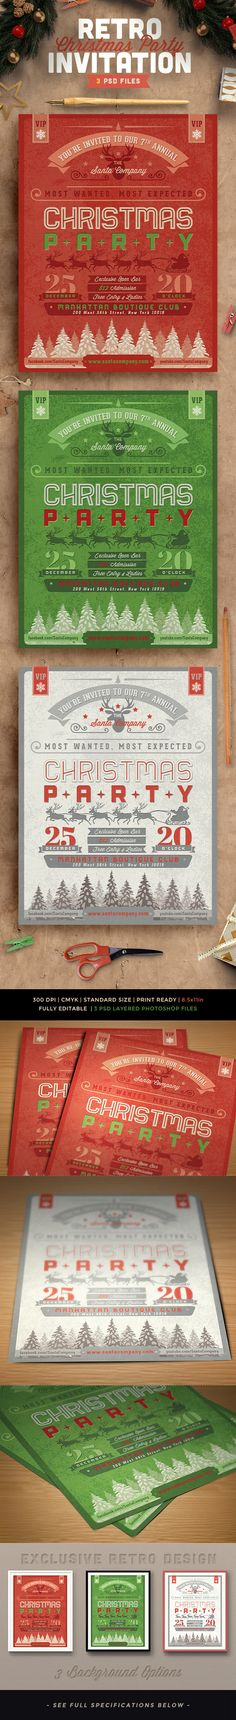 My Favorite Christmas Invitations and Christmas Cards Holiday - microsoft office invitation templates free download